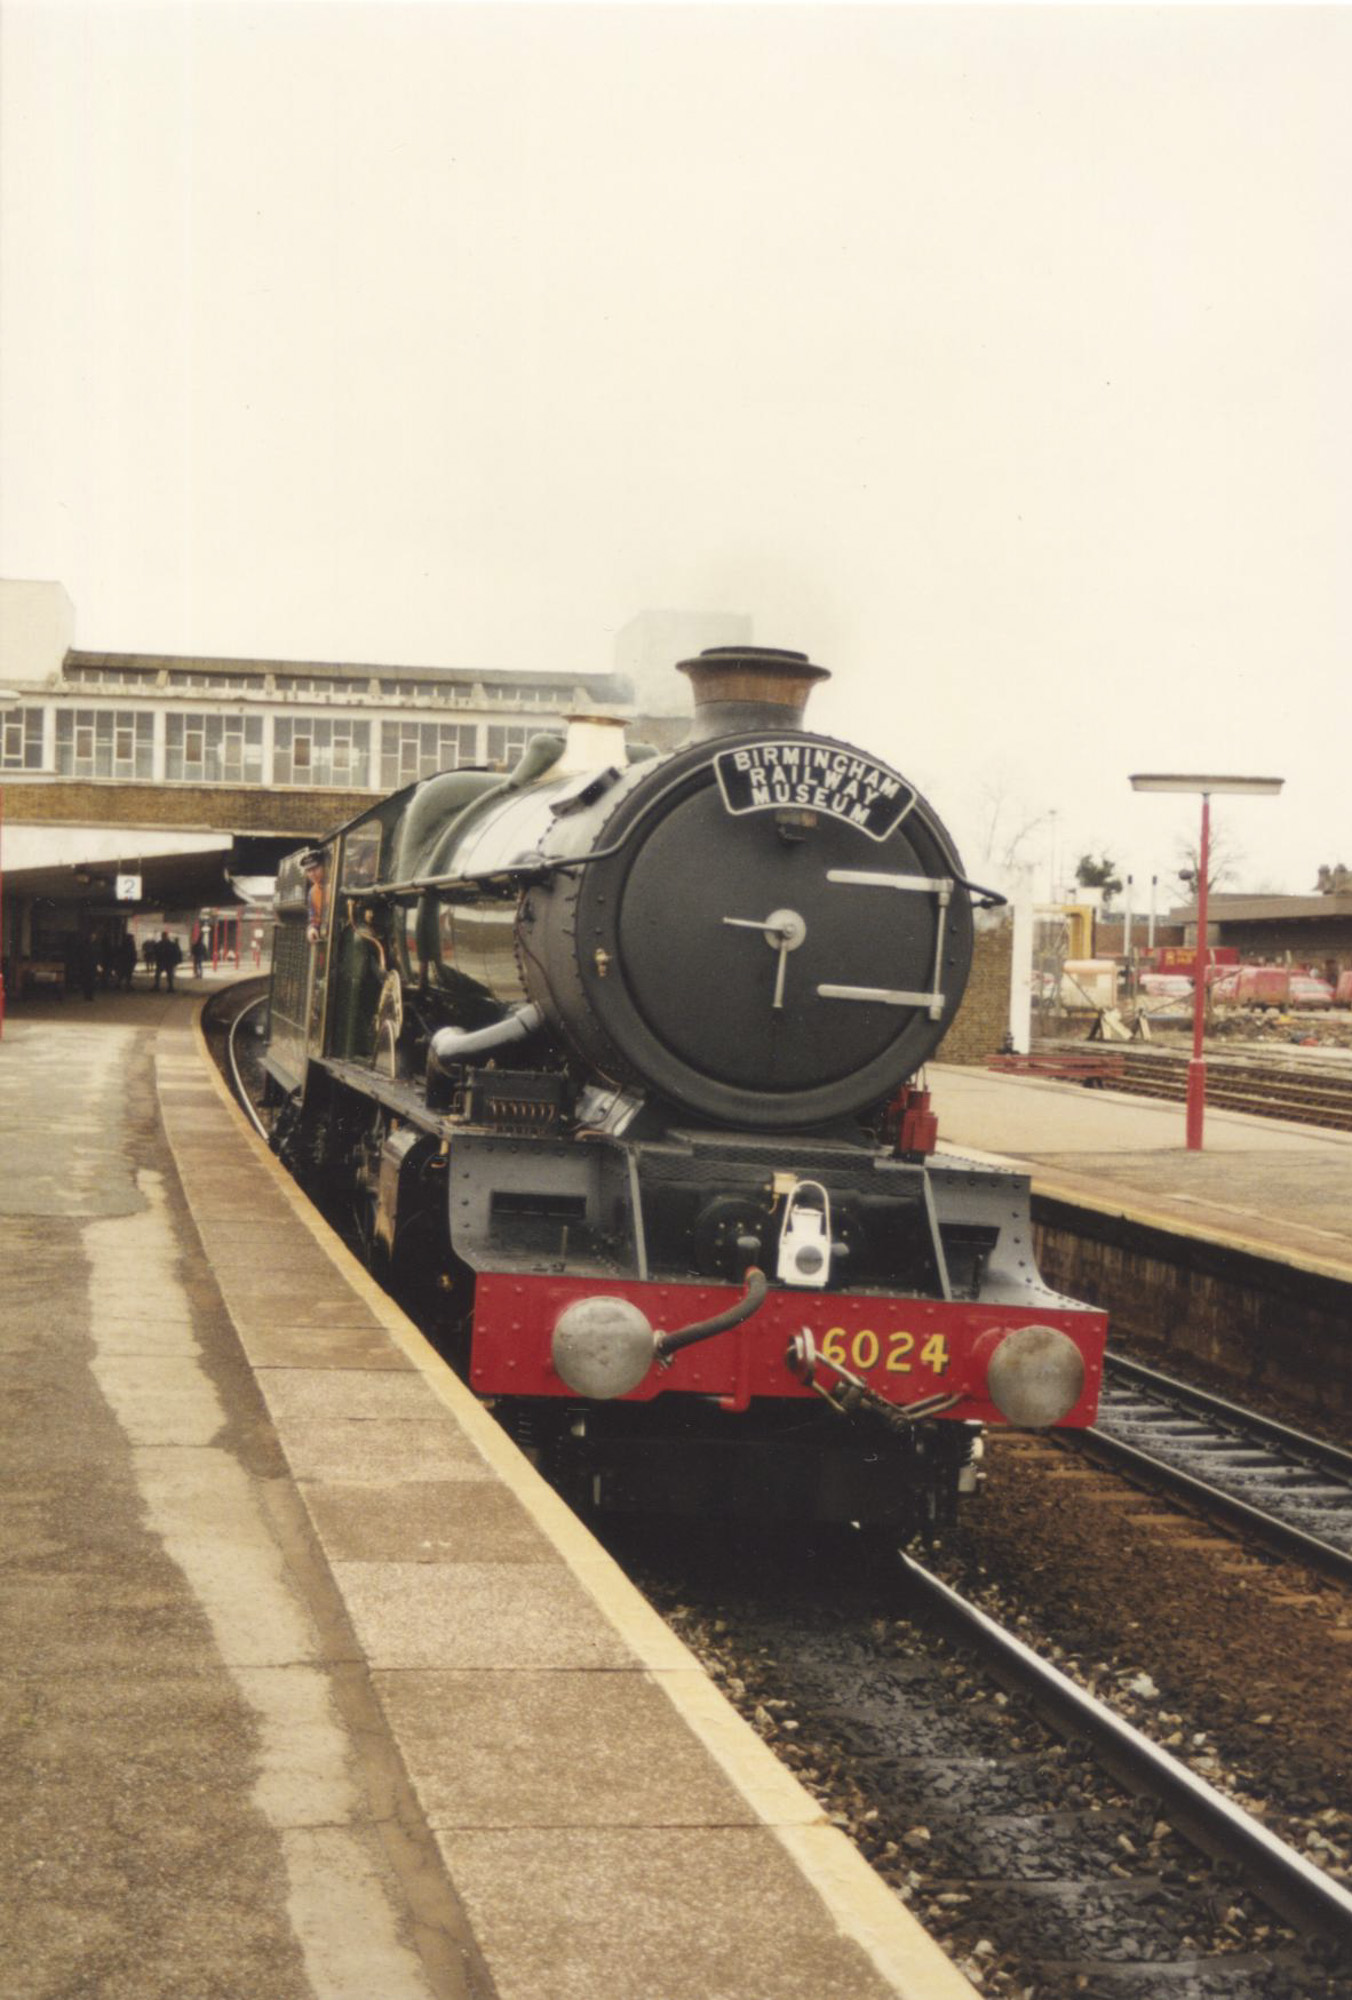 No. 6024 on test at Banbury, 8 February 1990. © Chris Brown